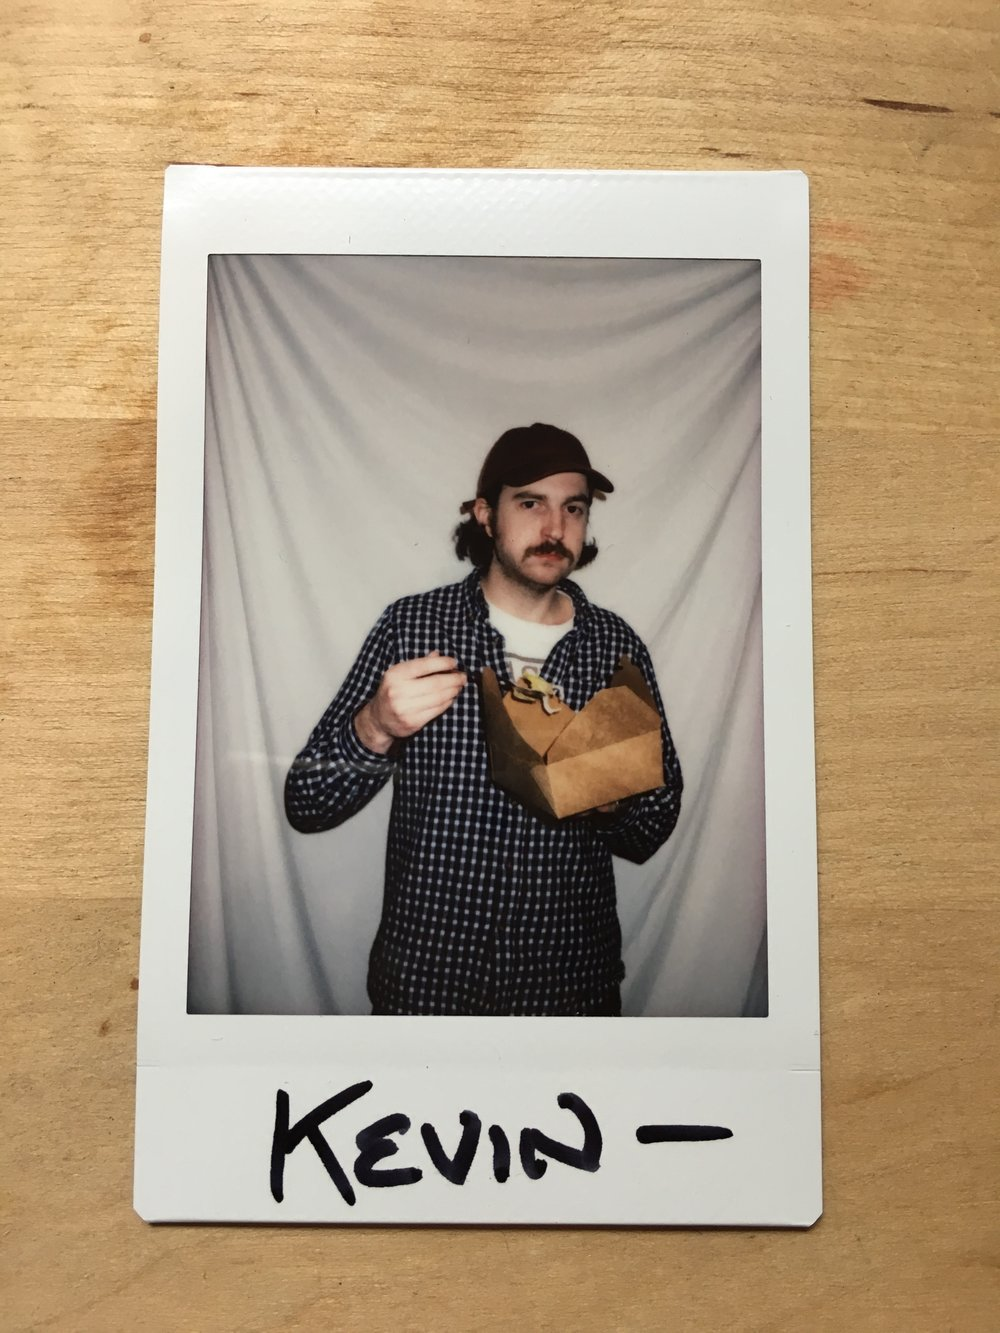 Kevin Mockford   Co-Founder, Music Director, Publicist   Kevin.SubRosa@gmail.com       Currently listening to:    Labi Siffre  Courtney Marie Andrews  Alex G (Sandy)  Ty Segall & The Freedom Band   Jay Som  Rostam  Alex Cameron      Favorite Dipping Sauce:    Sriracha Mayo      Superpower:    Teleportation